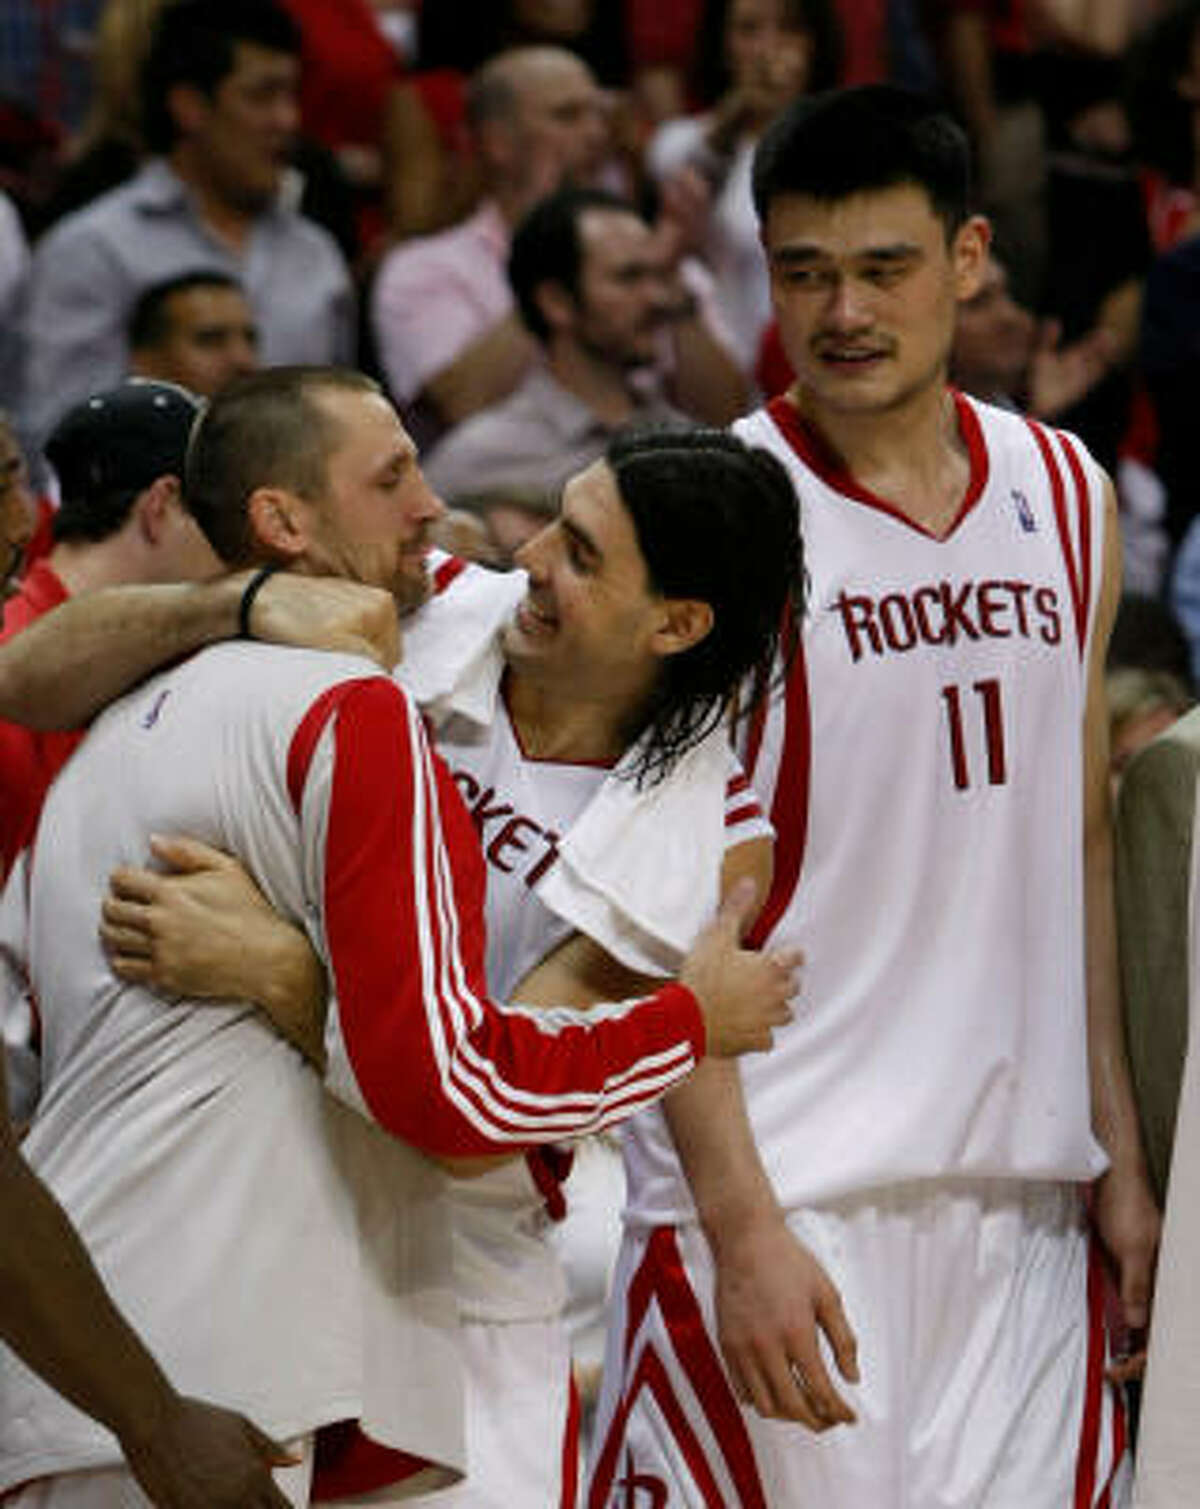 Rockets players including, from left, Brent Barry, Luis Scola and Yao Ming were ecstatic on Thursday but know more work remains.